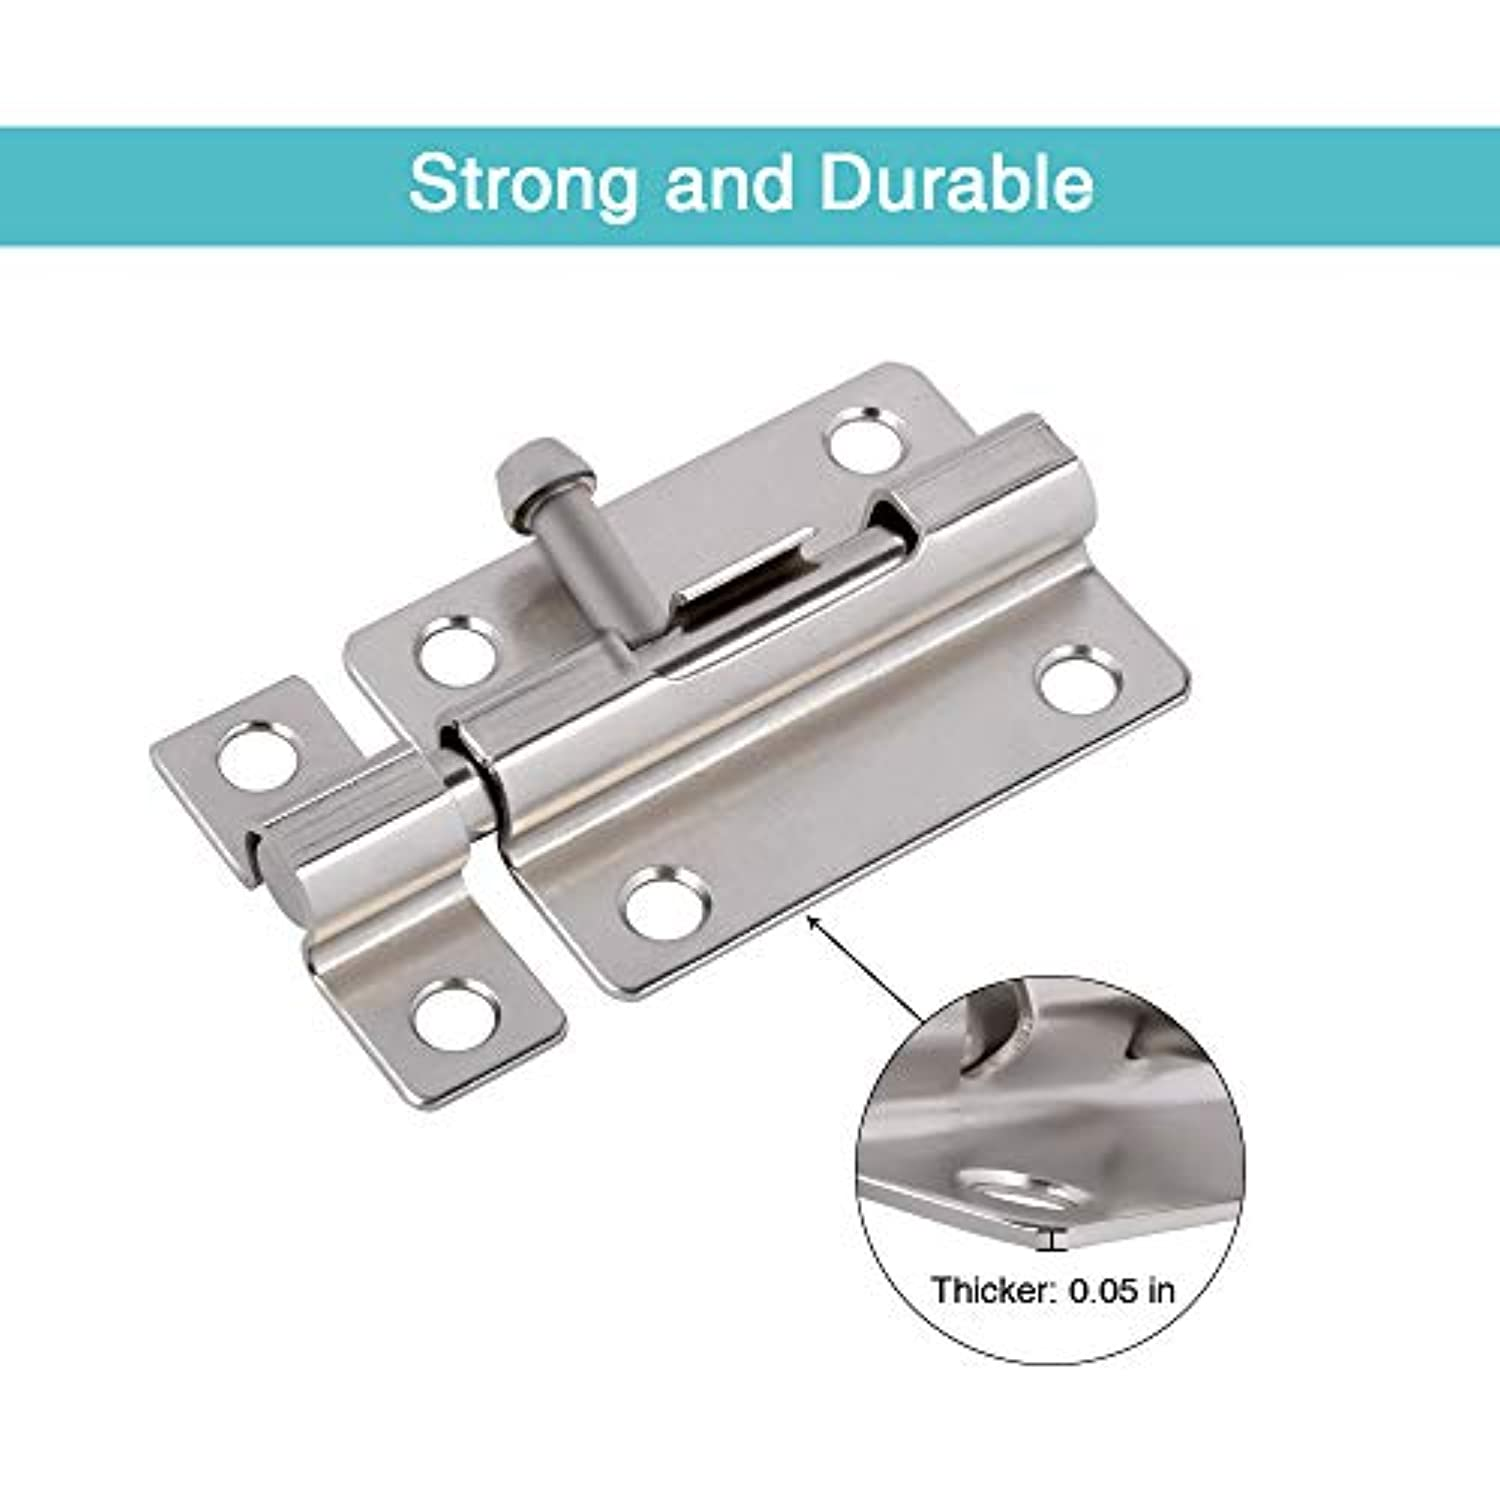 Classier: Buy CRANACH Door Security Slide Latch Lock, 3 inch Barrel Bolt with Solid Heavy Duty Steel to Keep You Safe and Private, Brushed Nickle Finish Door Latch Sliding Lock with 12 Screws (Silver-2 Pack)